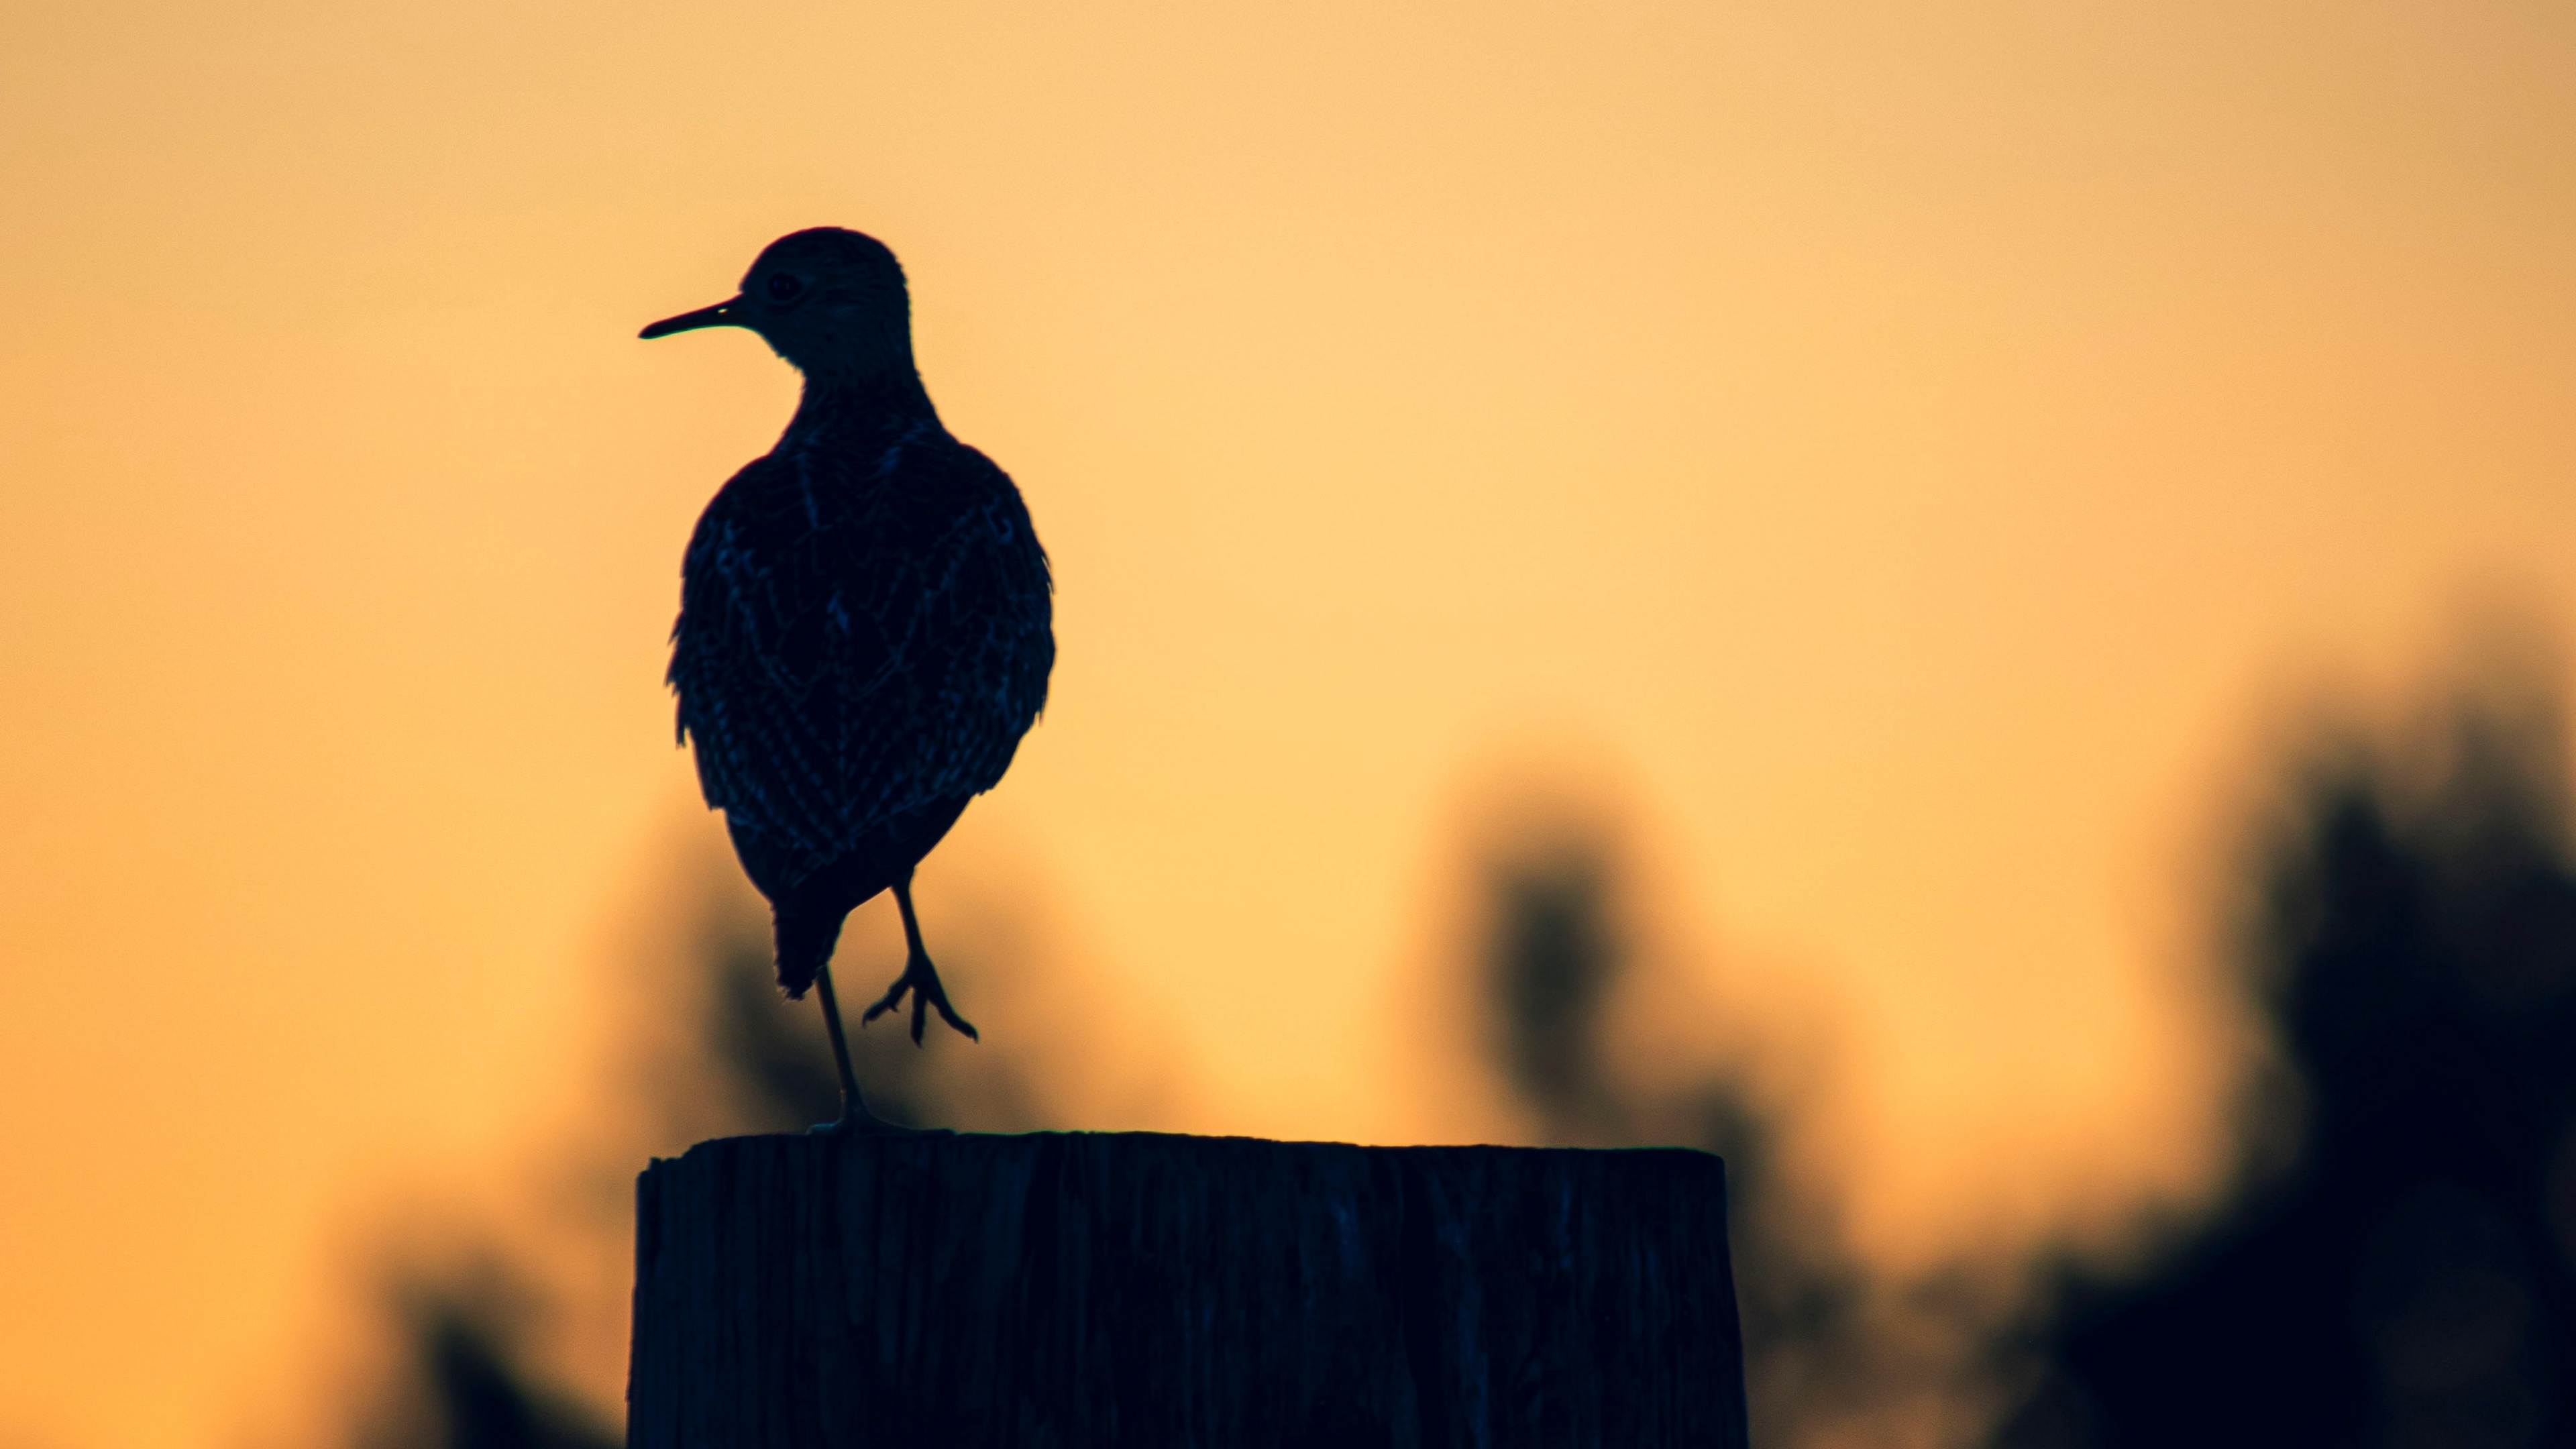 Bird 4k Wallpapers For Your Desktop Or Mobile Screen Free And Easy To Download